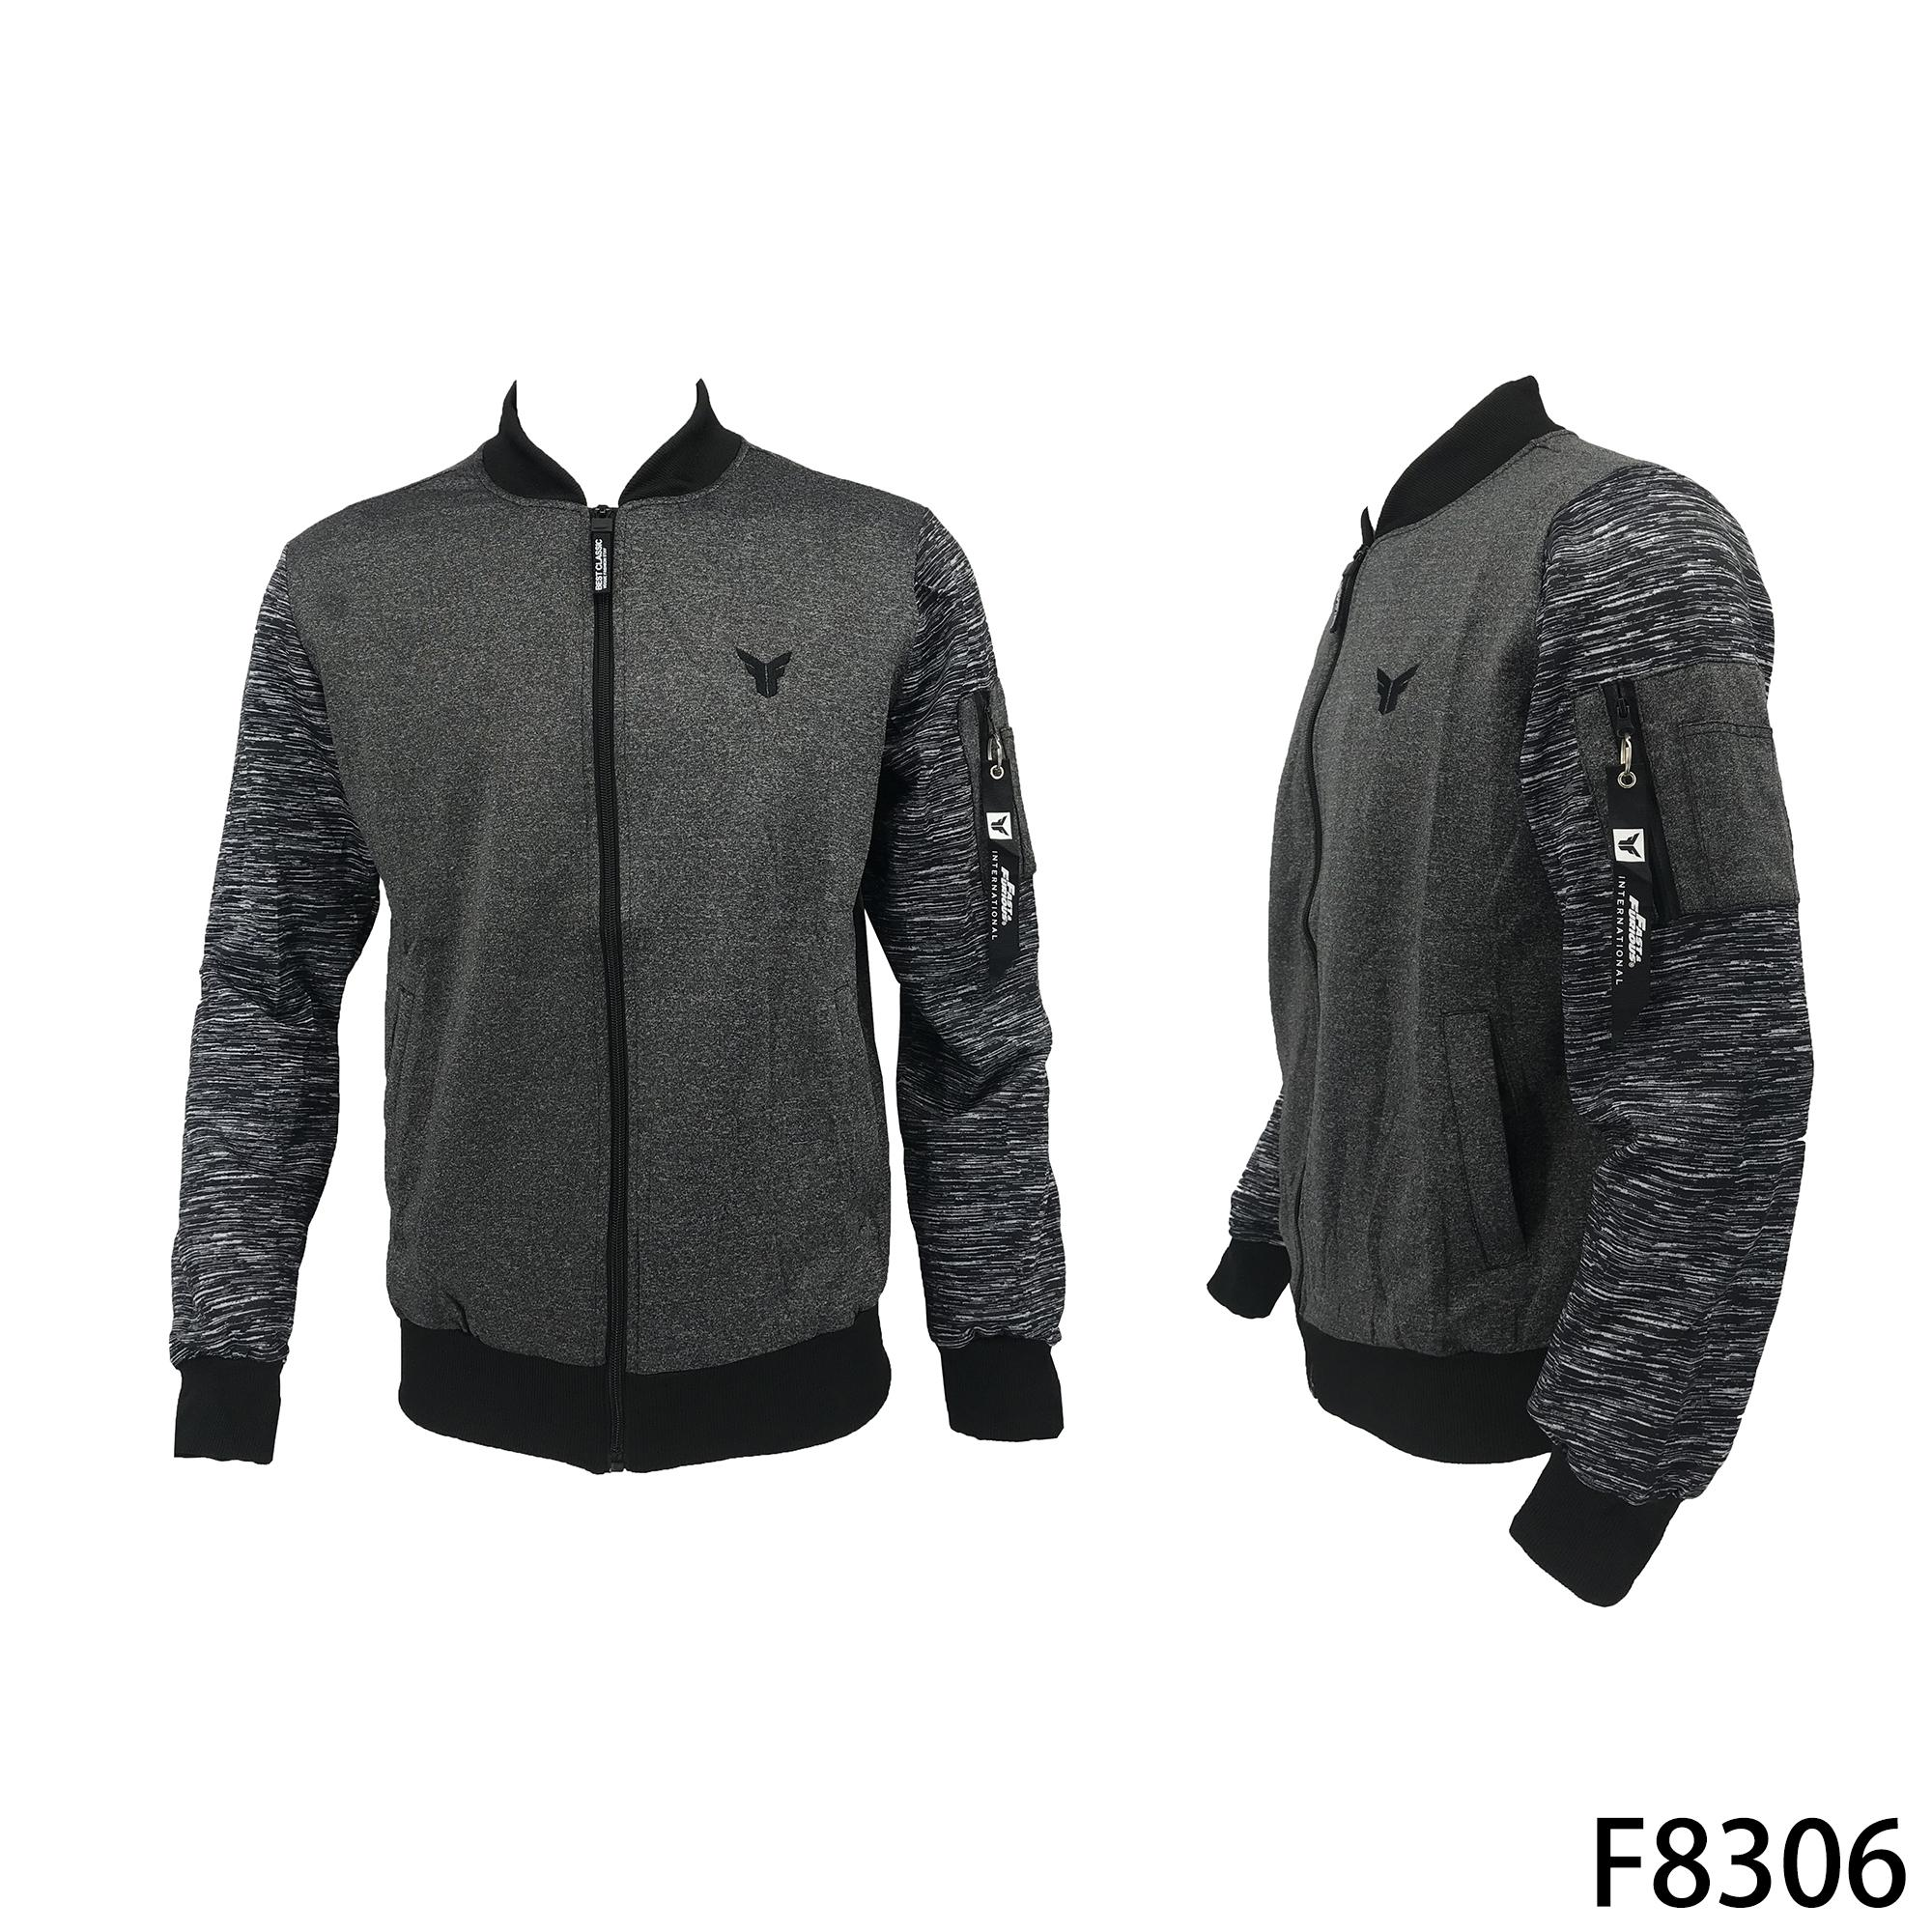 Jacket For Men High Grade Quality Ff F8306 By Cmb Merchandising.